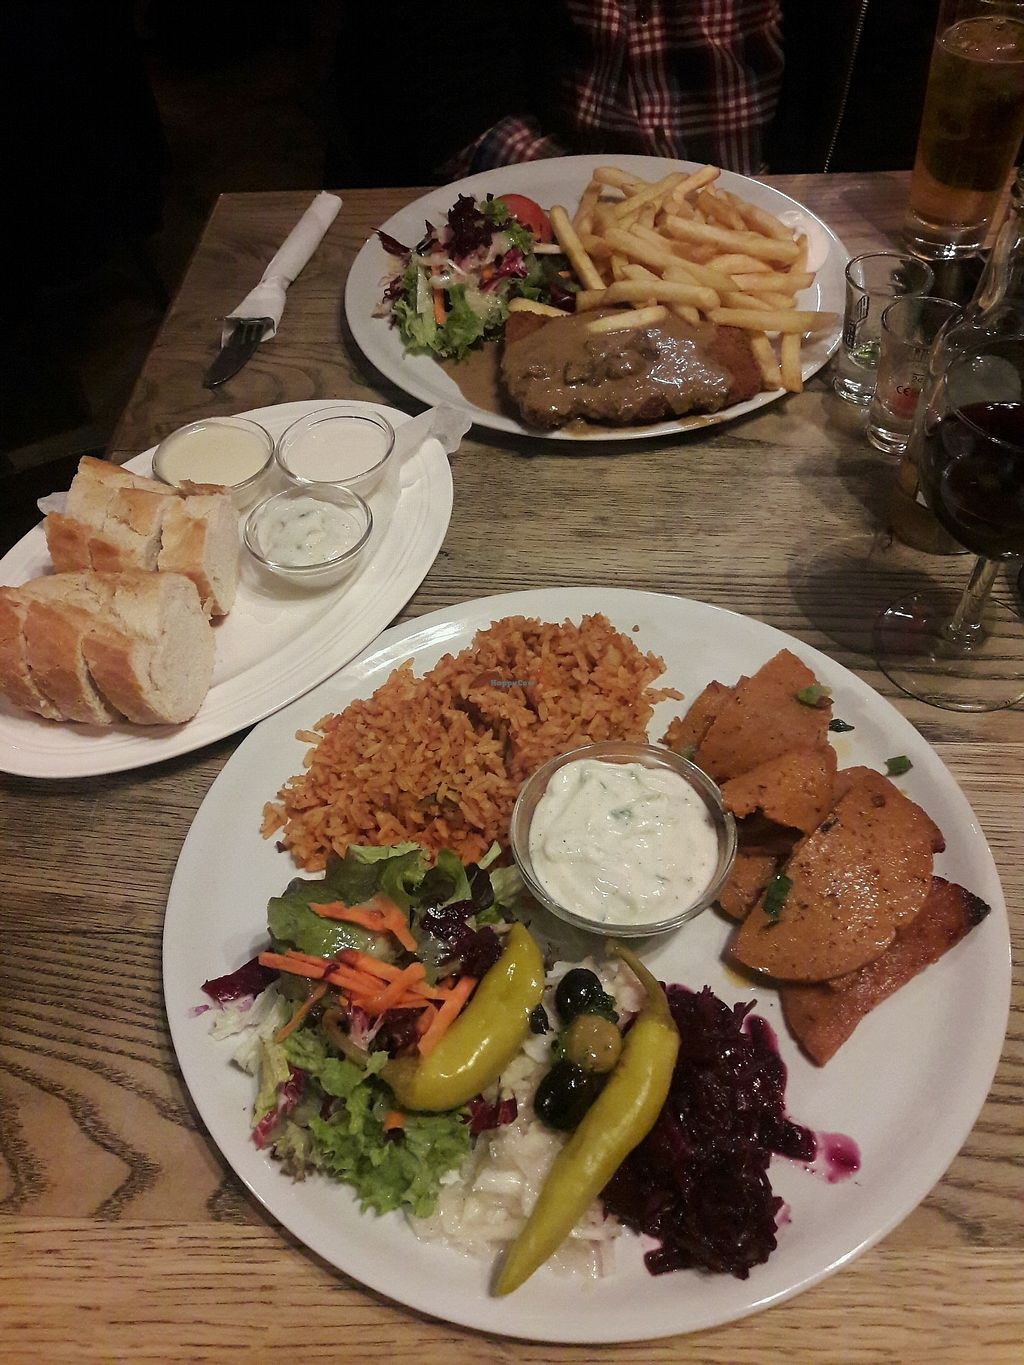 """Photo of Feldstern  by <a href=""""/members/profile/Scarify"""">Scarify</a> <br/>kebap with rice and schnitzel with fries  <br/> March 30, 2018  - <a href='/contact/abuse/image/34342/378302'>Report</a>"""